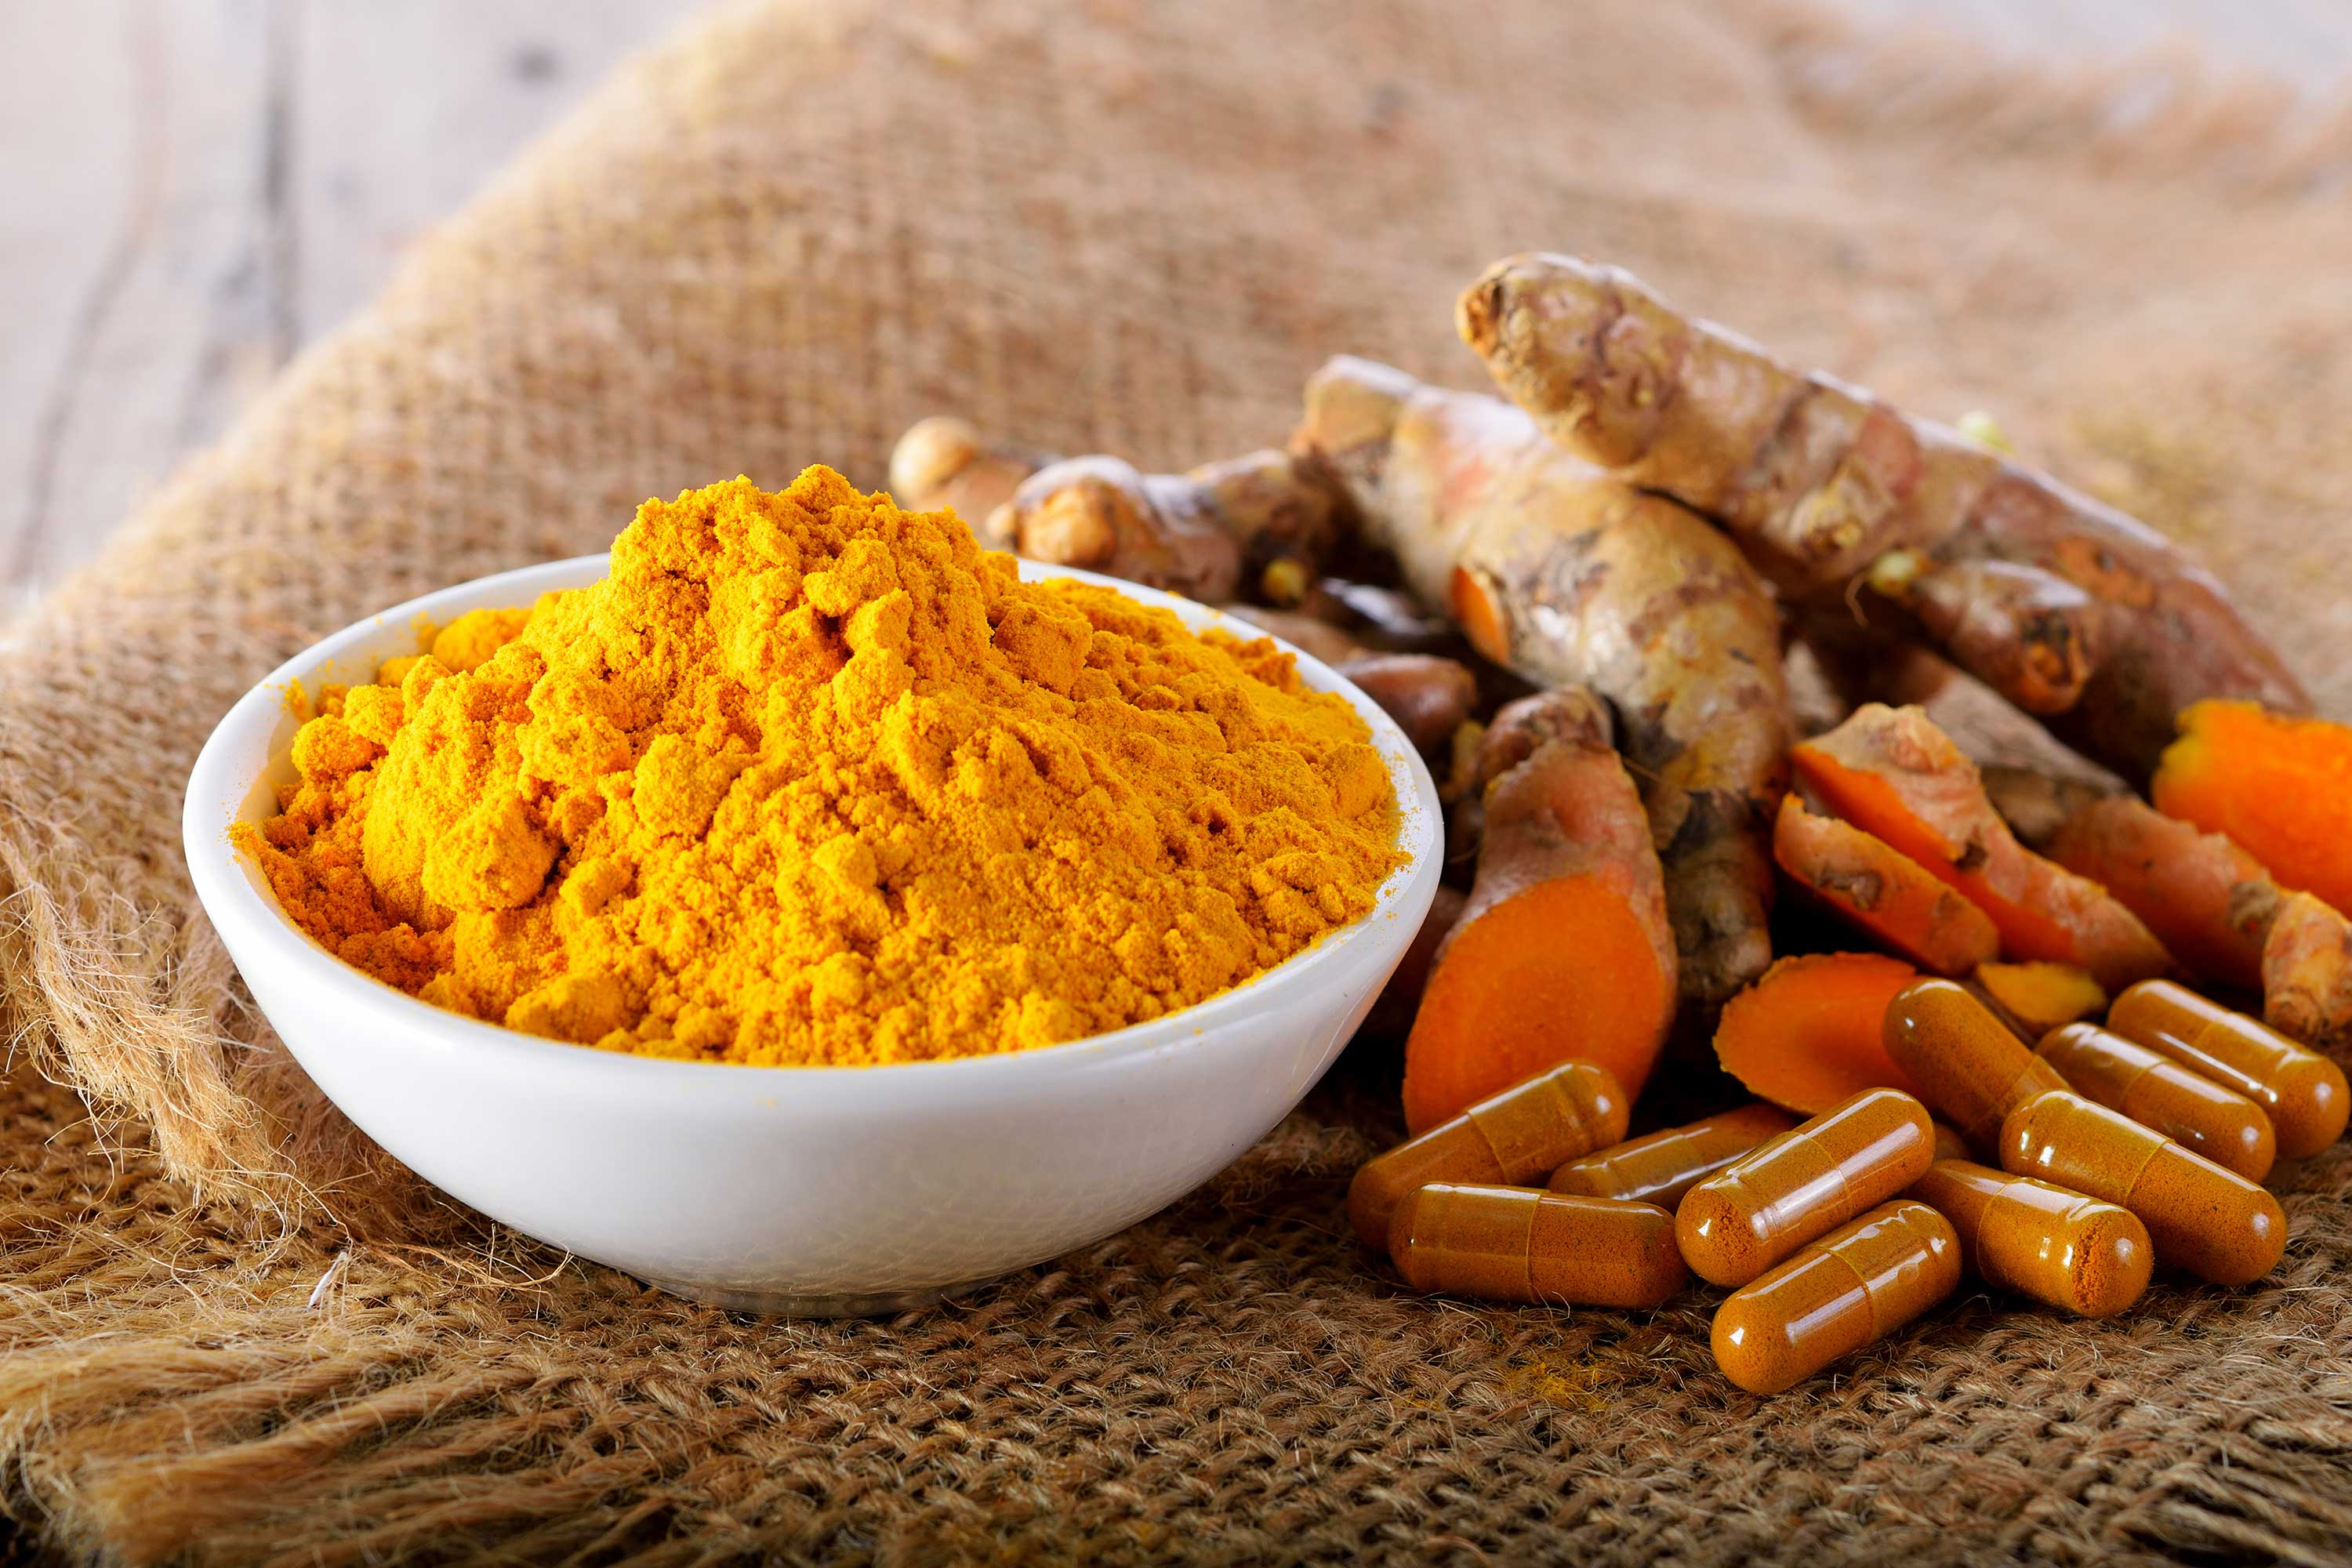 10 Important Reasons You Need Turmeric and Curcumin